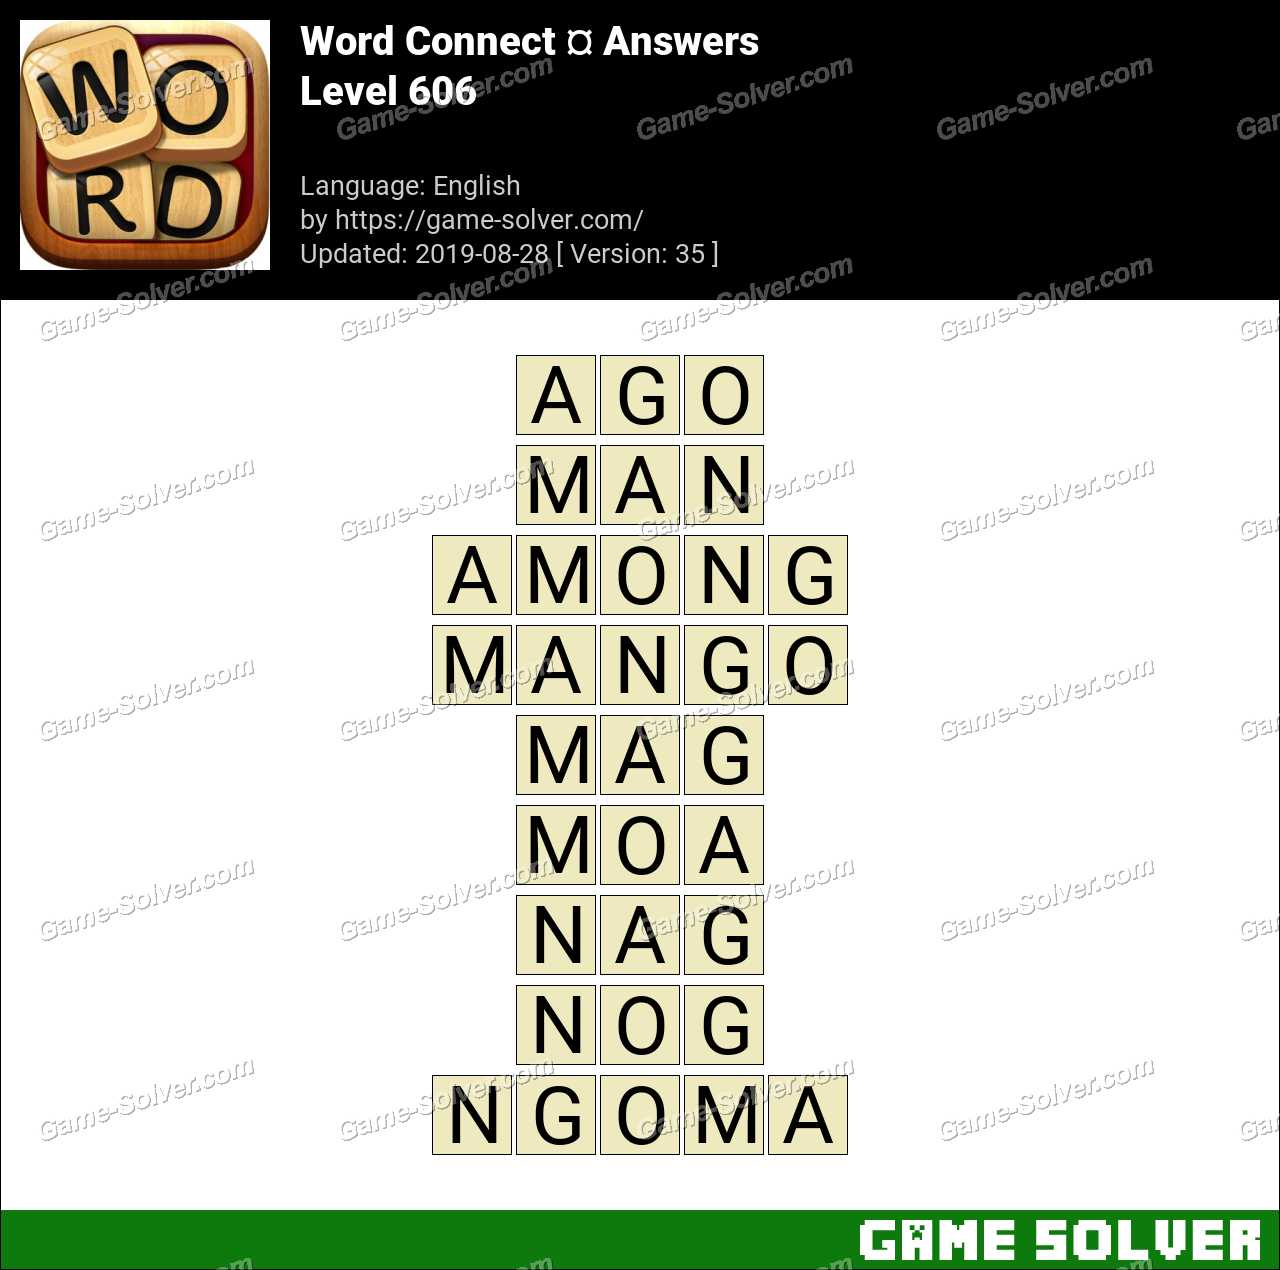 Word Connect Level 606 Answers